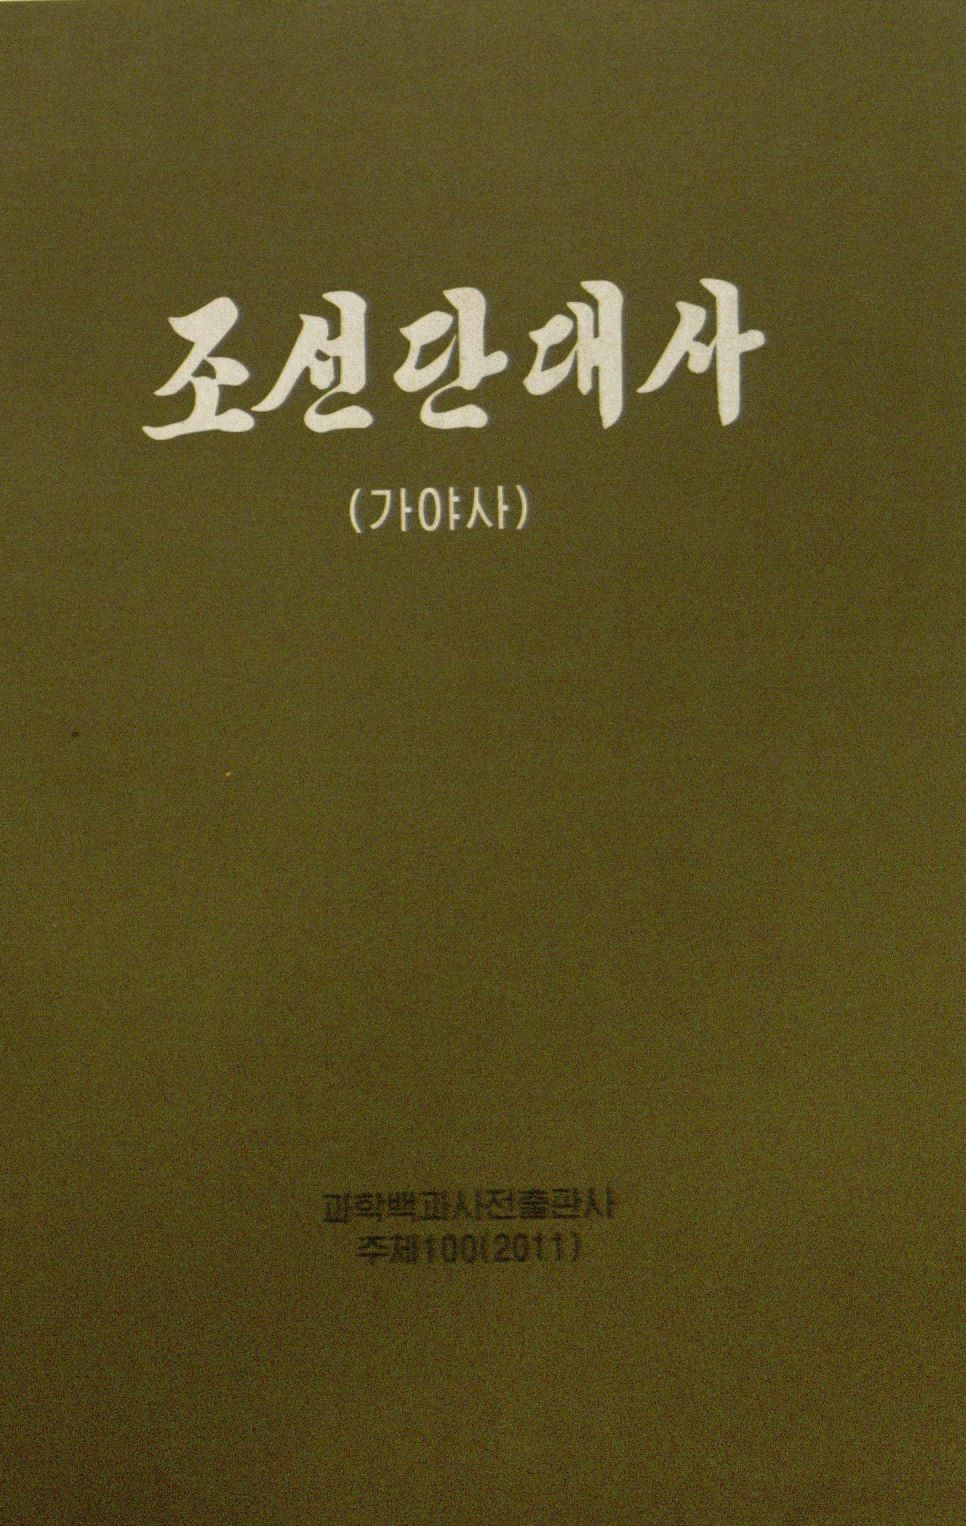 title page of 조선단대사:가야사